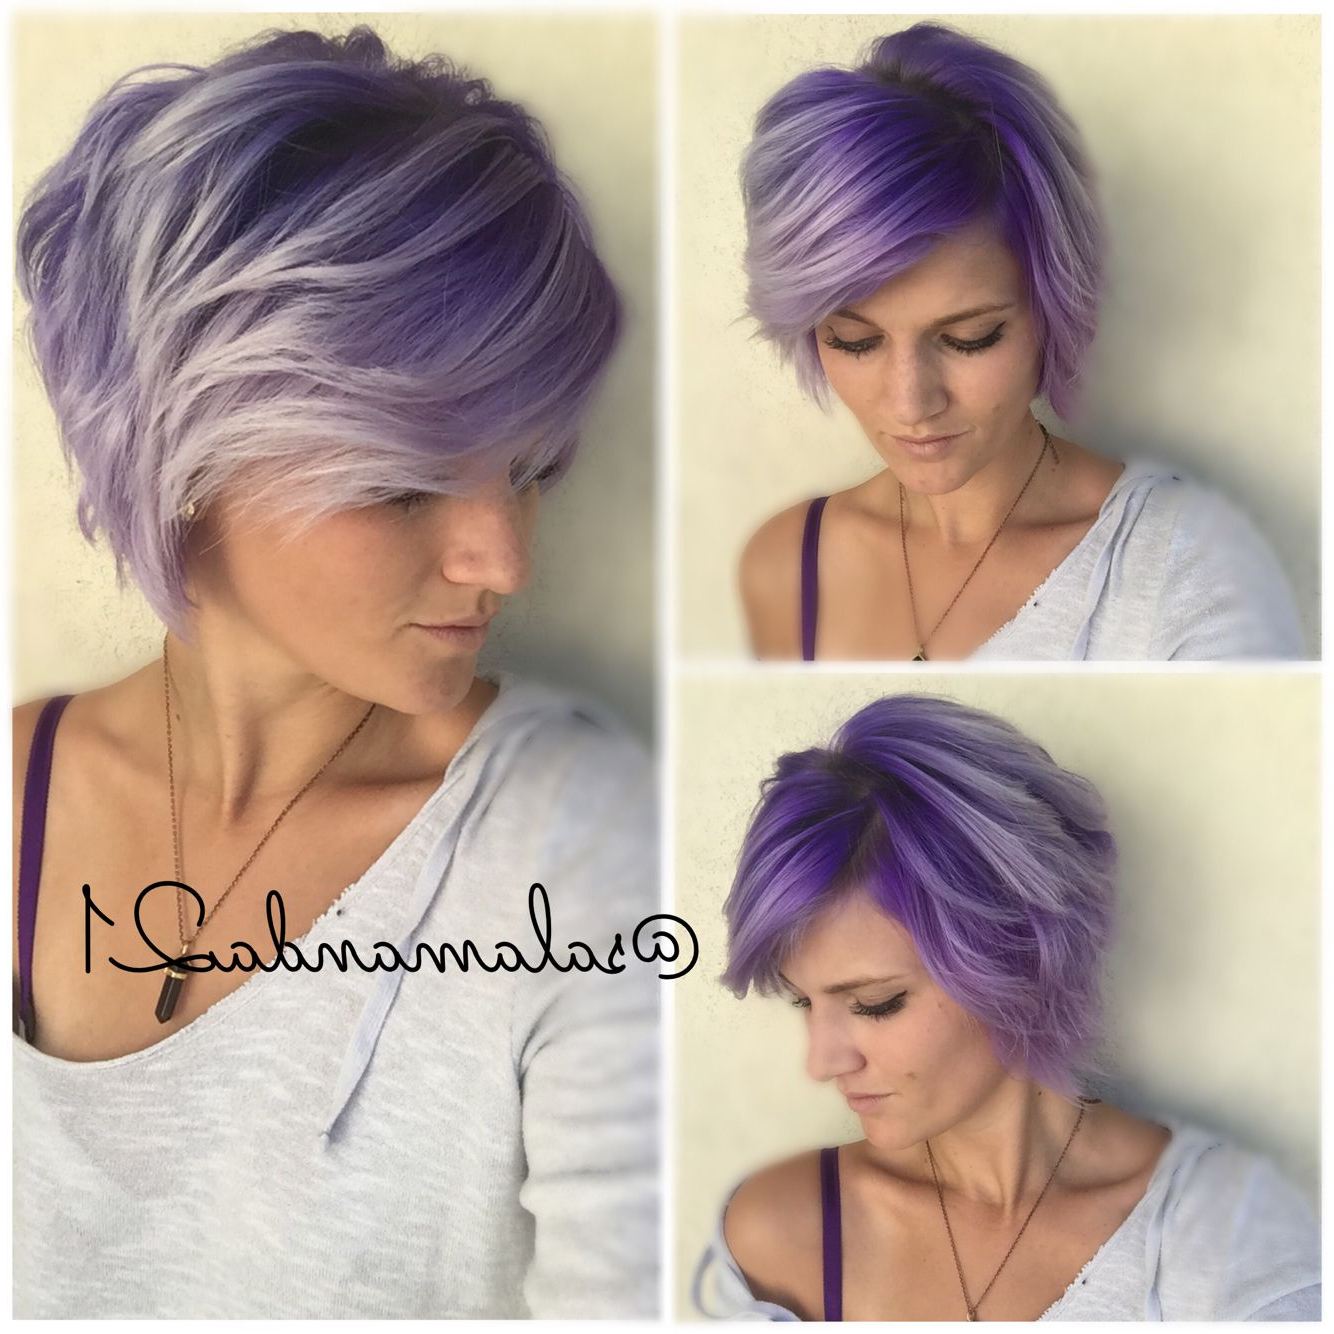 Purple Ombré On Short Hair | My Hair In 2018 | Pinterest | Short Throughout Lavender Haircuts With Side Part (View 16 of 20)